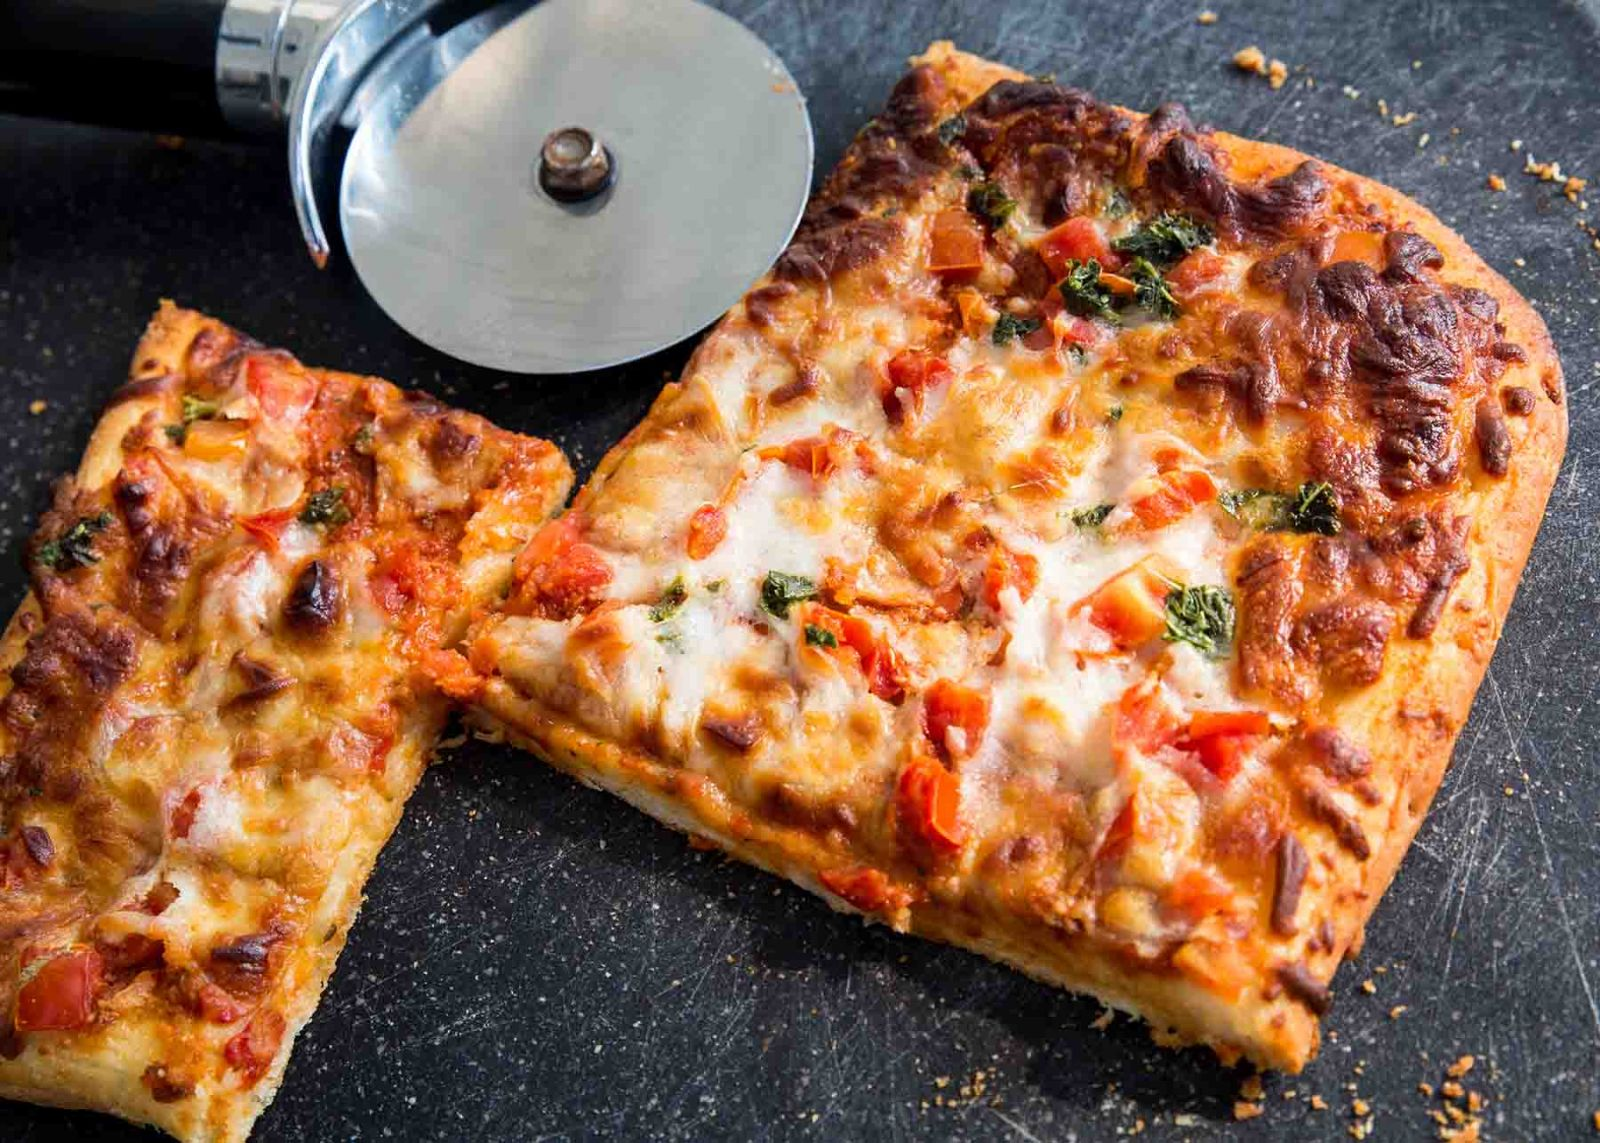 Sicilian square pizza in South Carolina